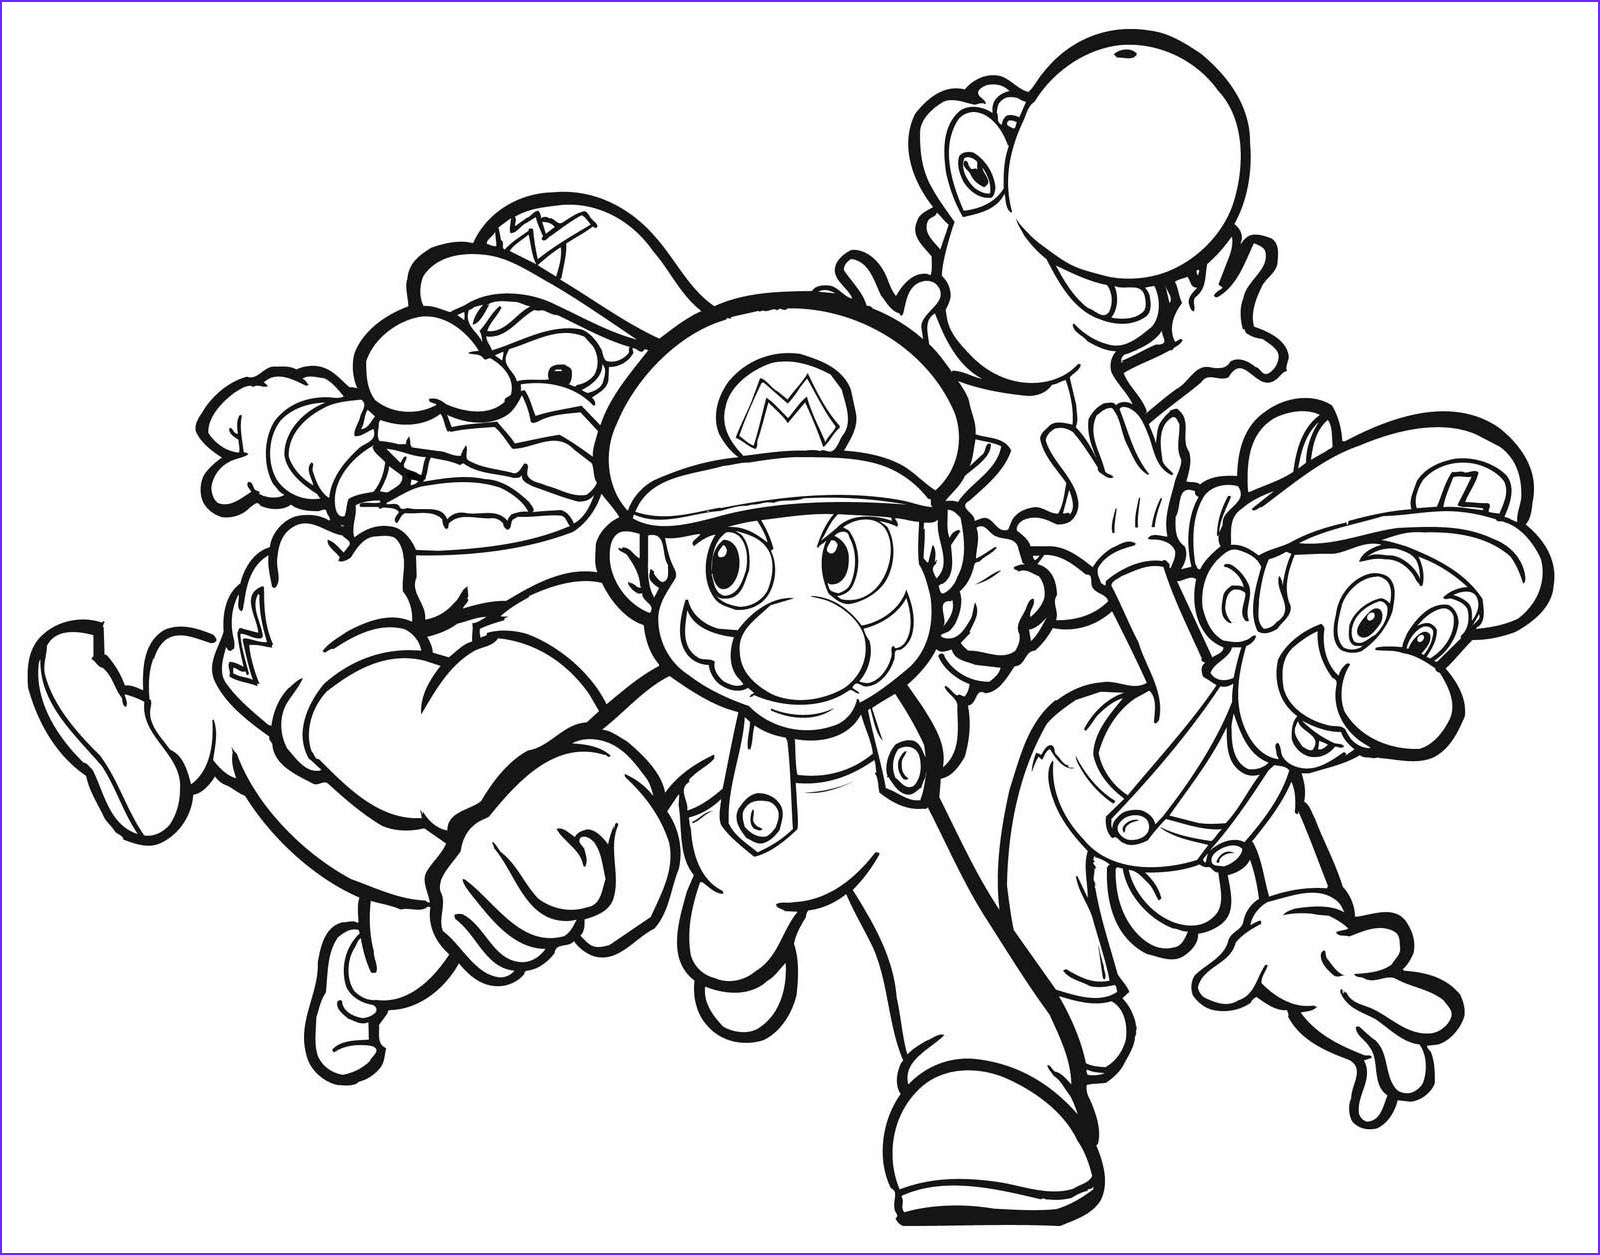 Luigi Coloring Pages Inspirational Image Colouring Pages Of Mario Yoshi Luigi and Wario for Kids